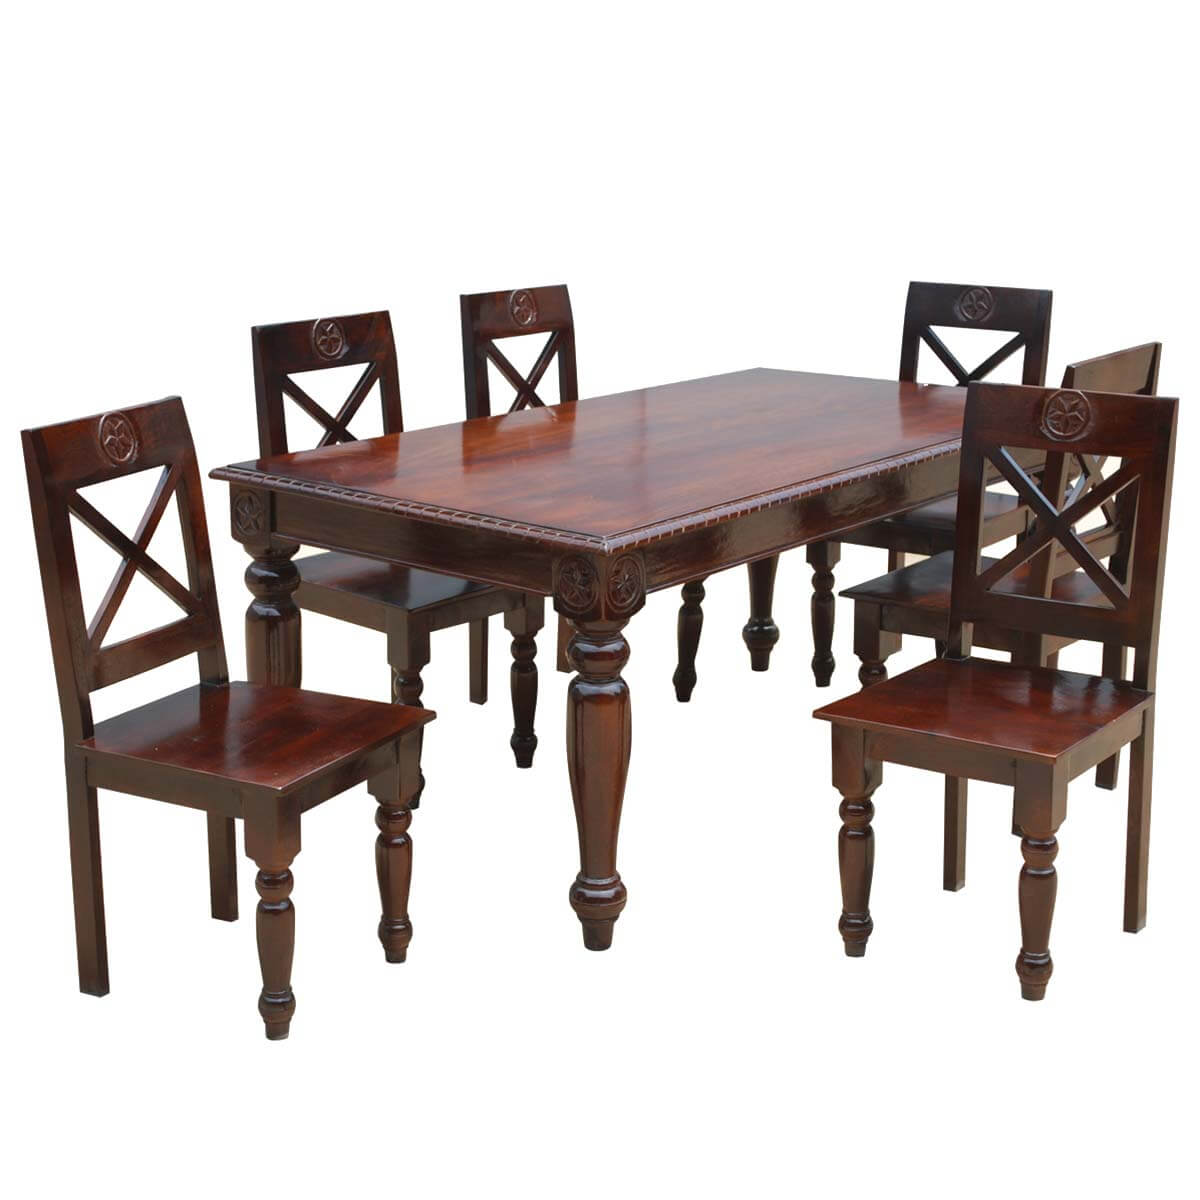 texas rustic dining table and chairs set. Black Bedroom Furniture Sets. Home Design Ideas